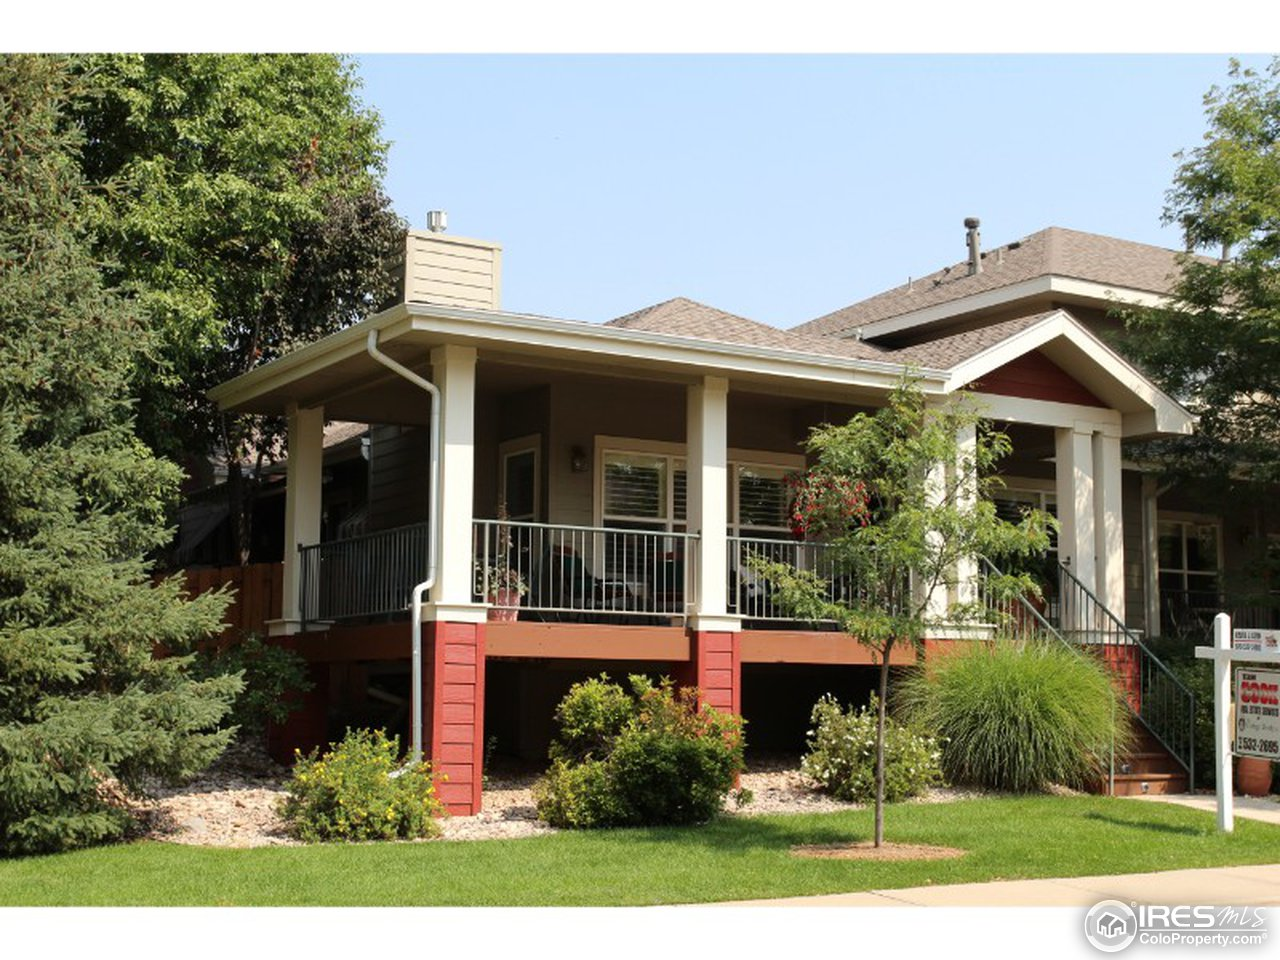 852 Welch Ave Loveland Home Listings - Team Cook Real Estate